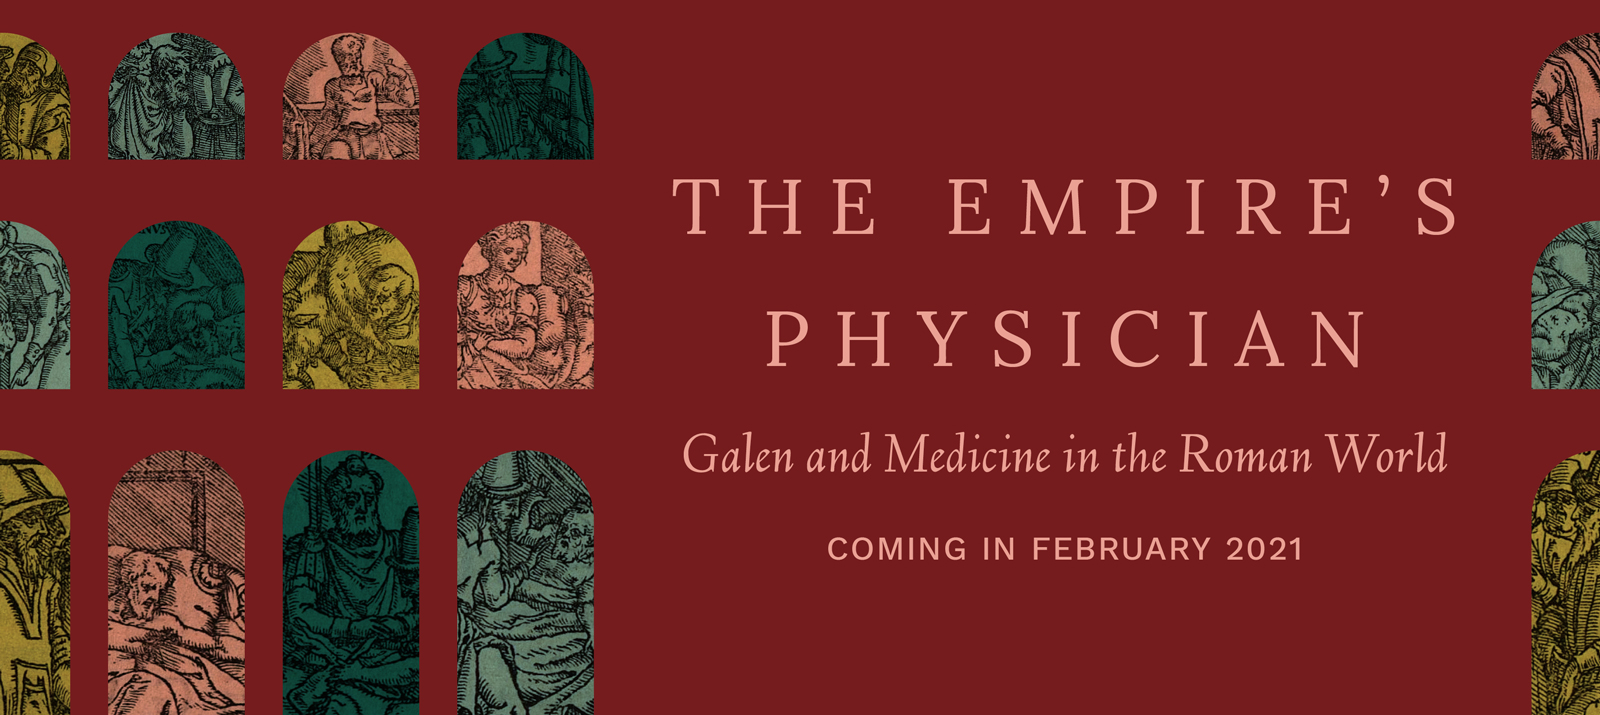 "text on a red background, ""The Empire's Physician: Galen and Medicine in the Roman World: coming in February 2021"""